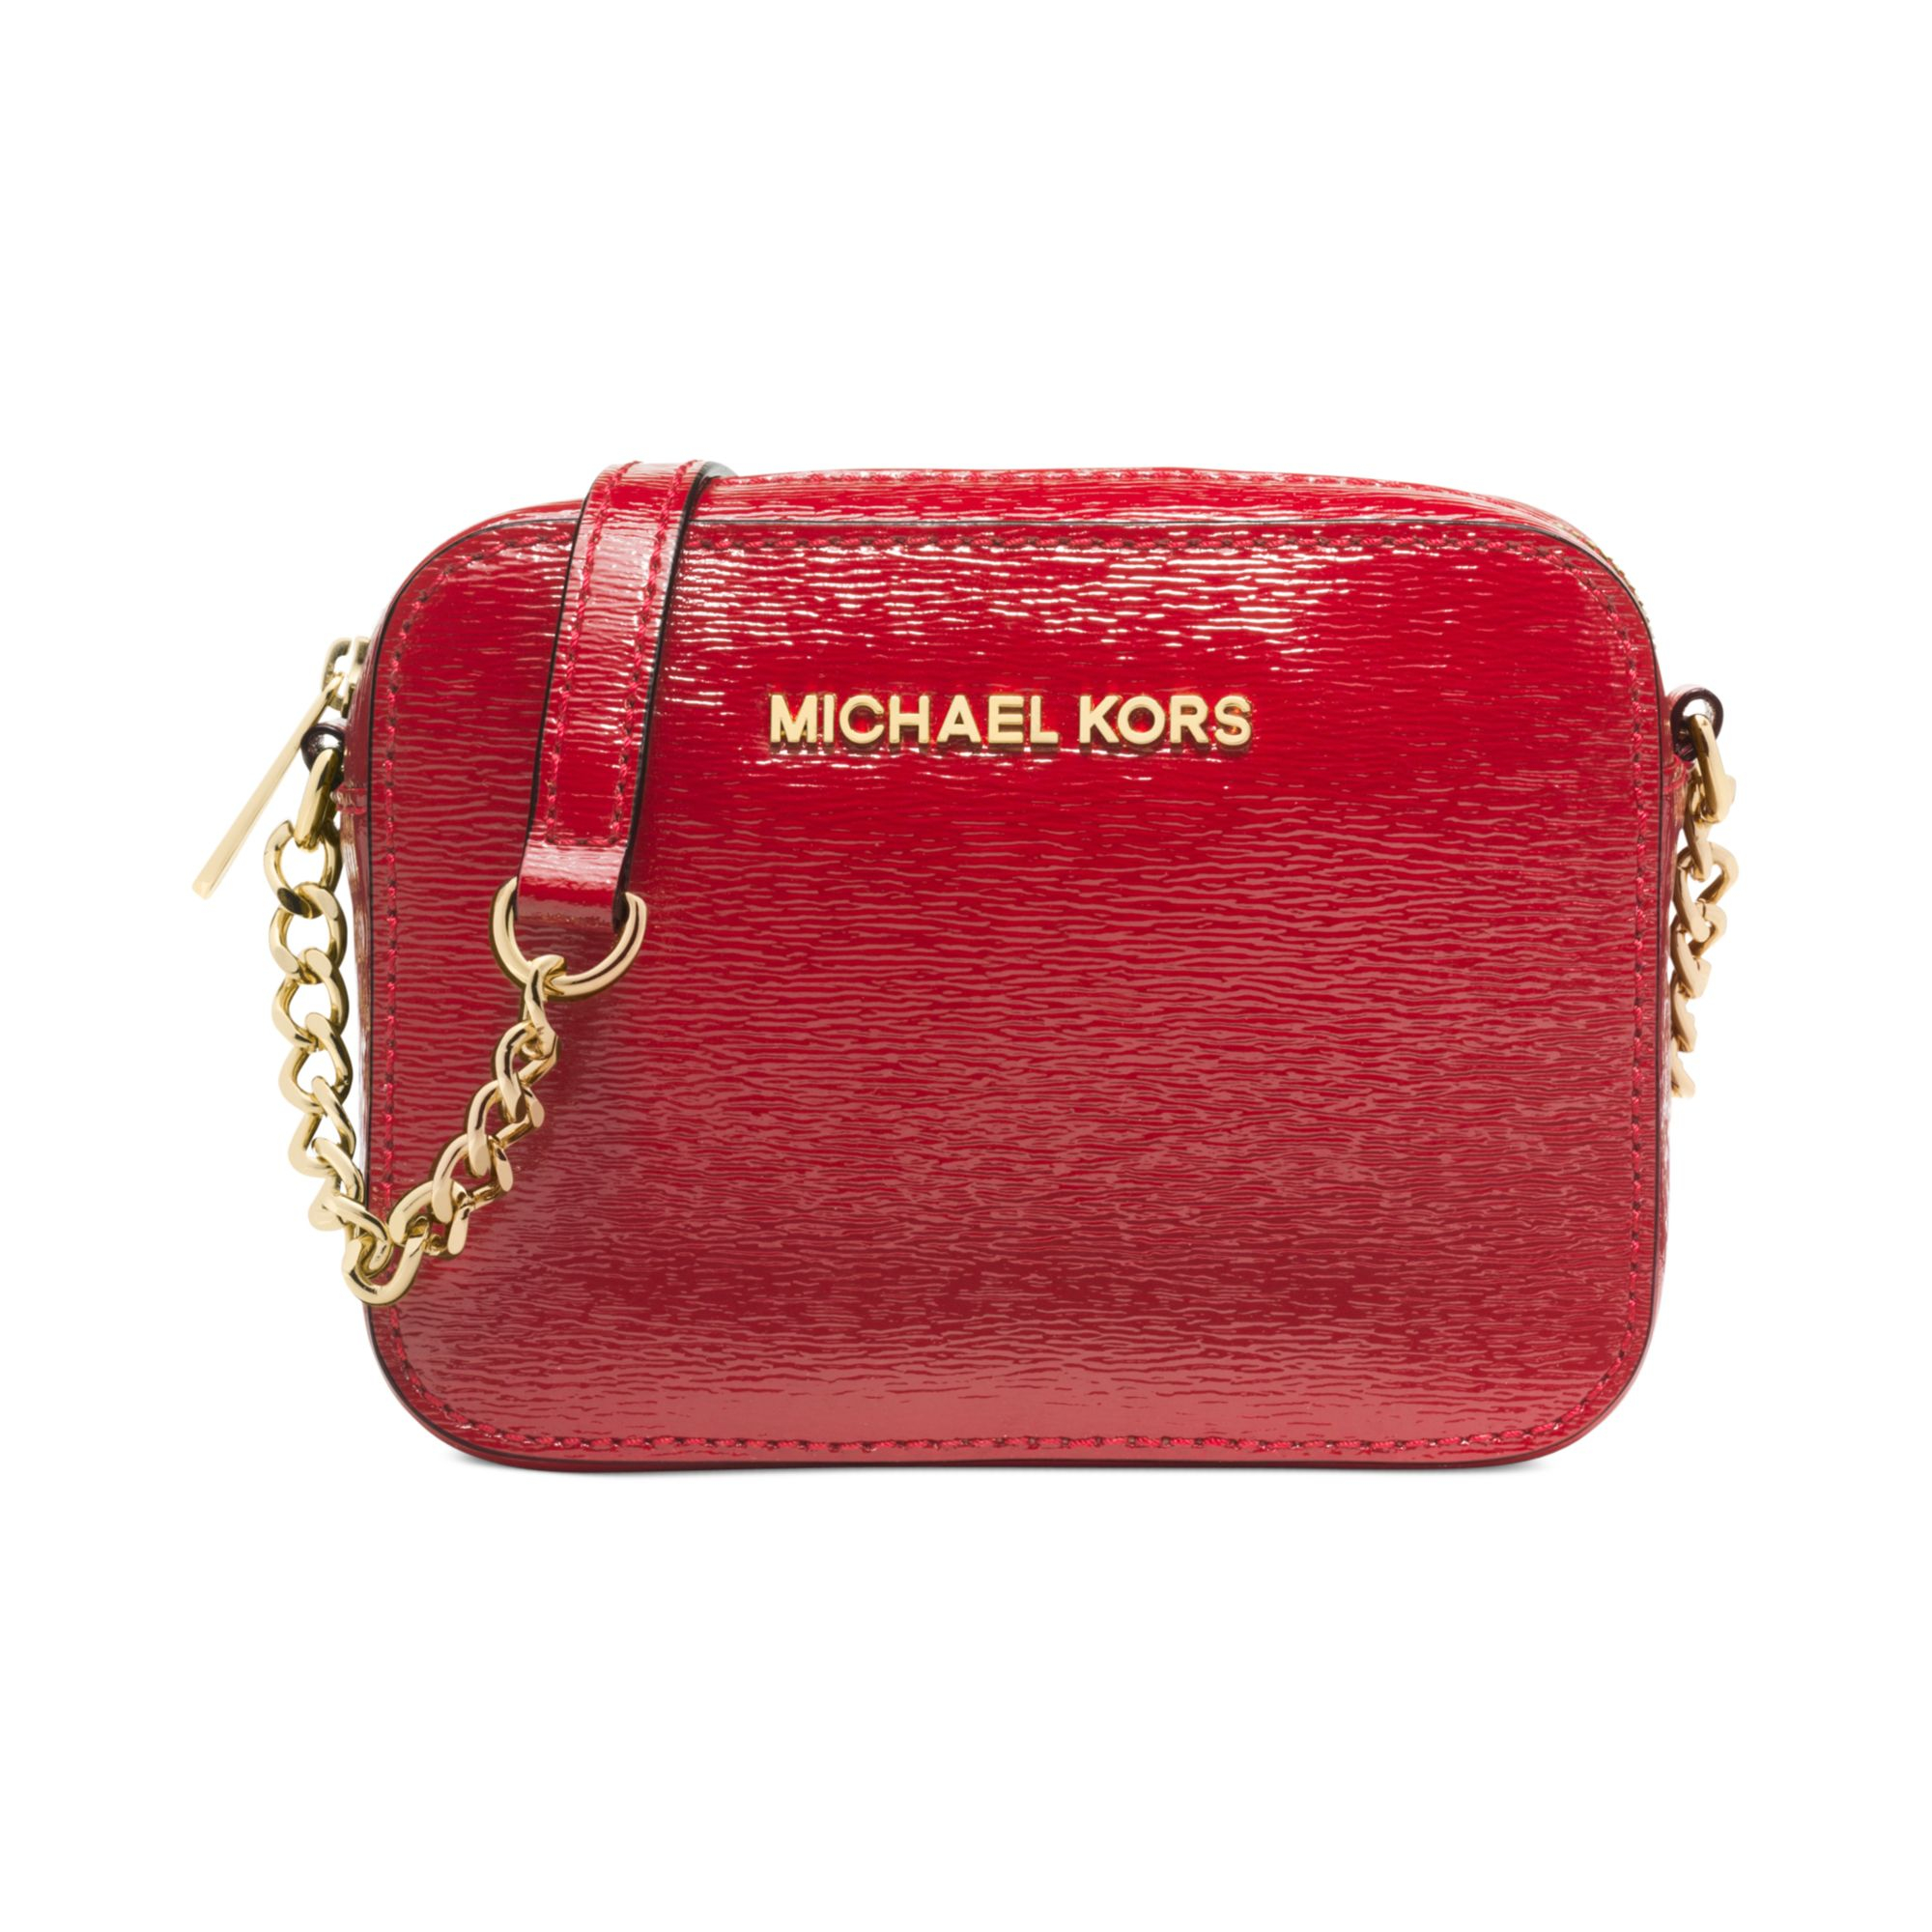 4d6261ce0ad7 Gallery. Previously sold at: Macy's · Women's Michael By Michael Kors Jet  Set